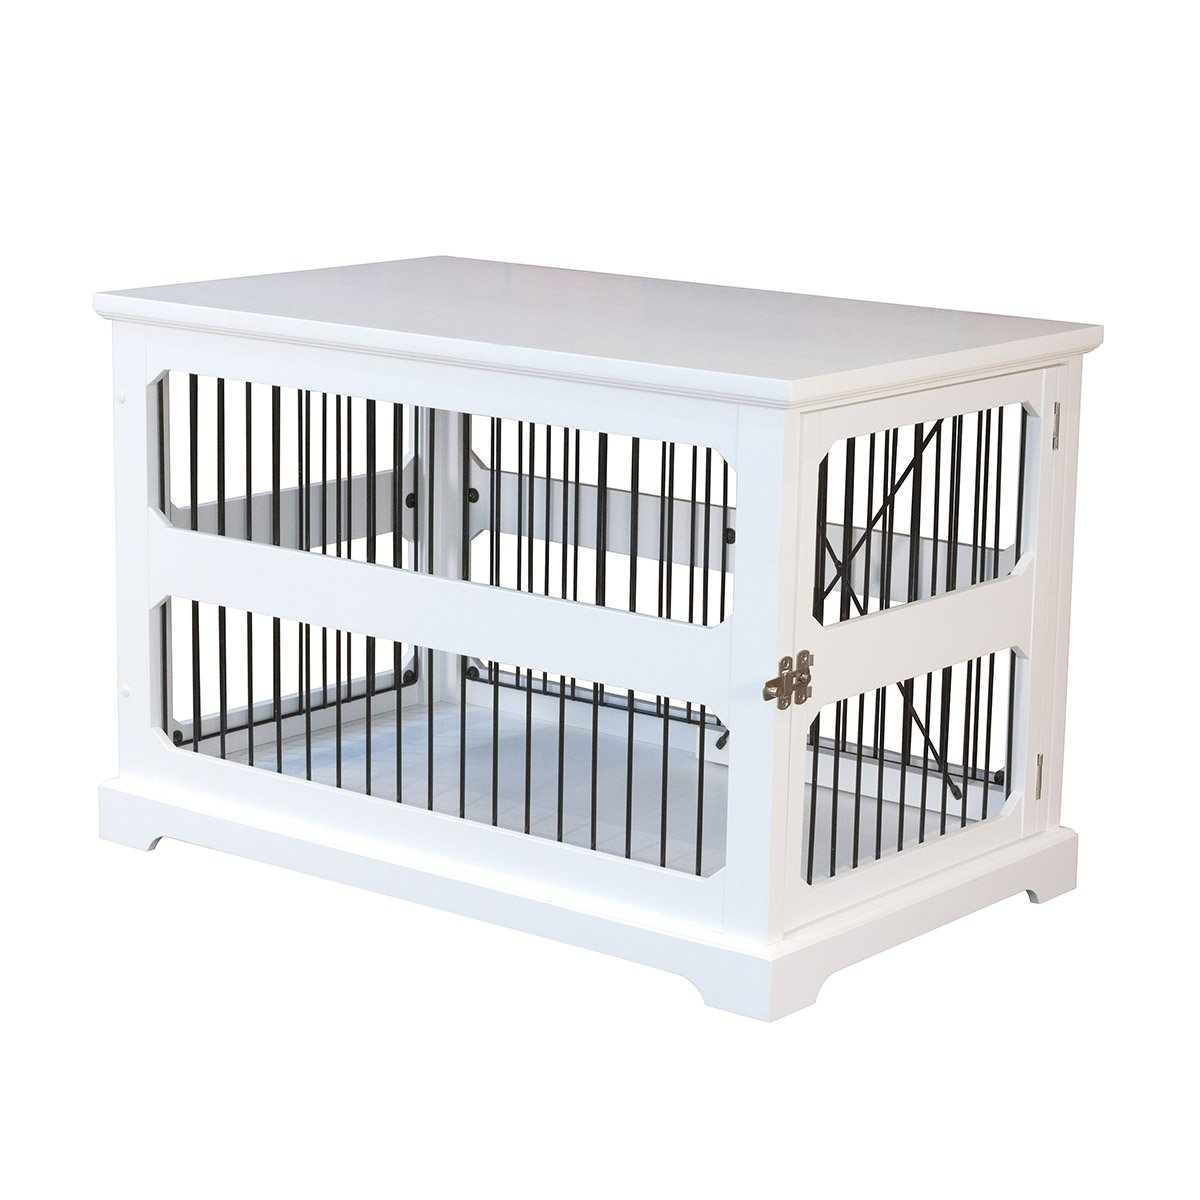 zoovilla Medium Slide Aside Crate and End Table by zoovilla